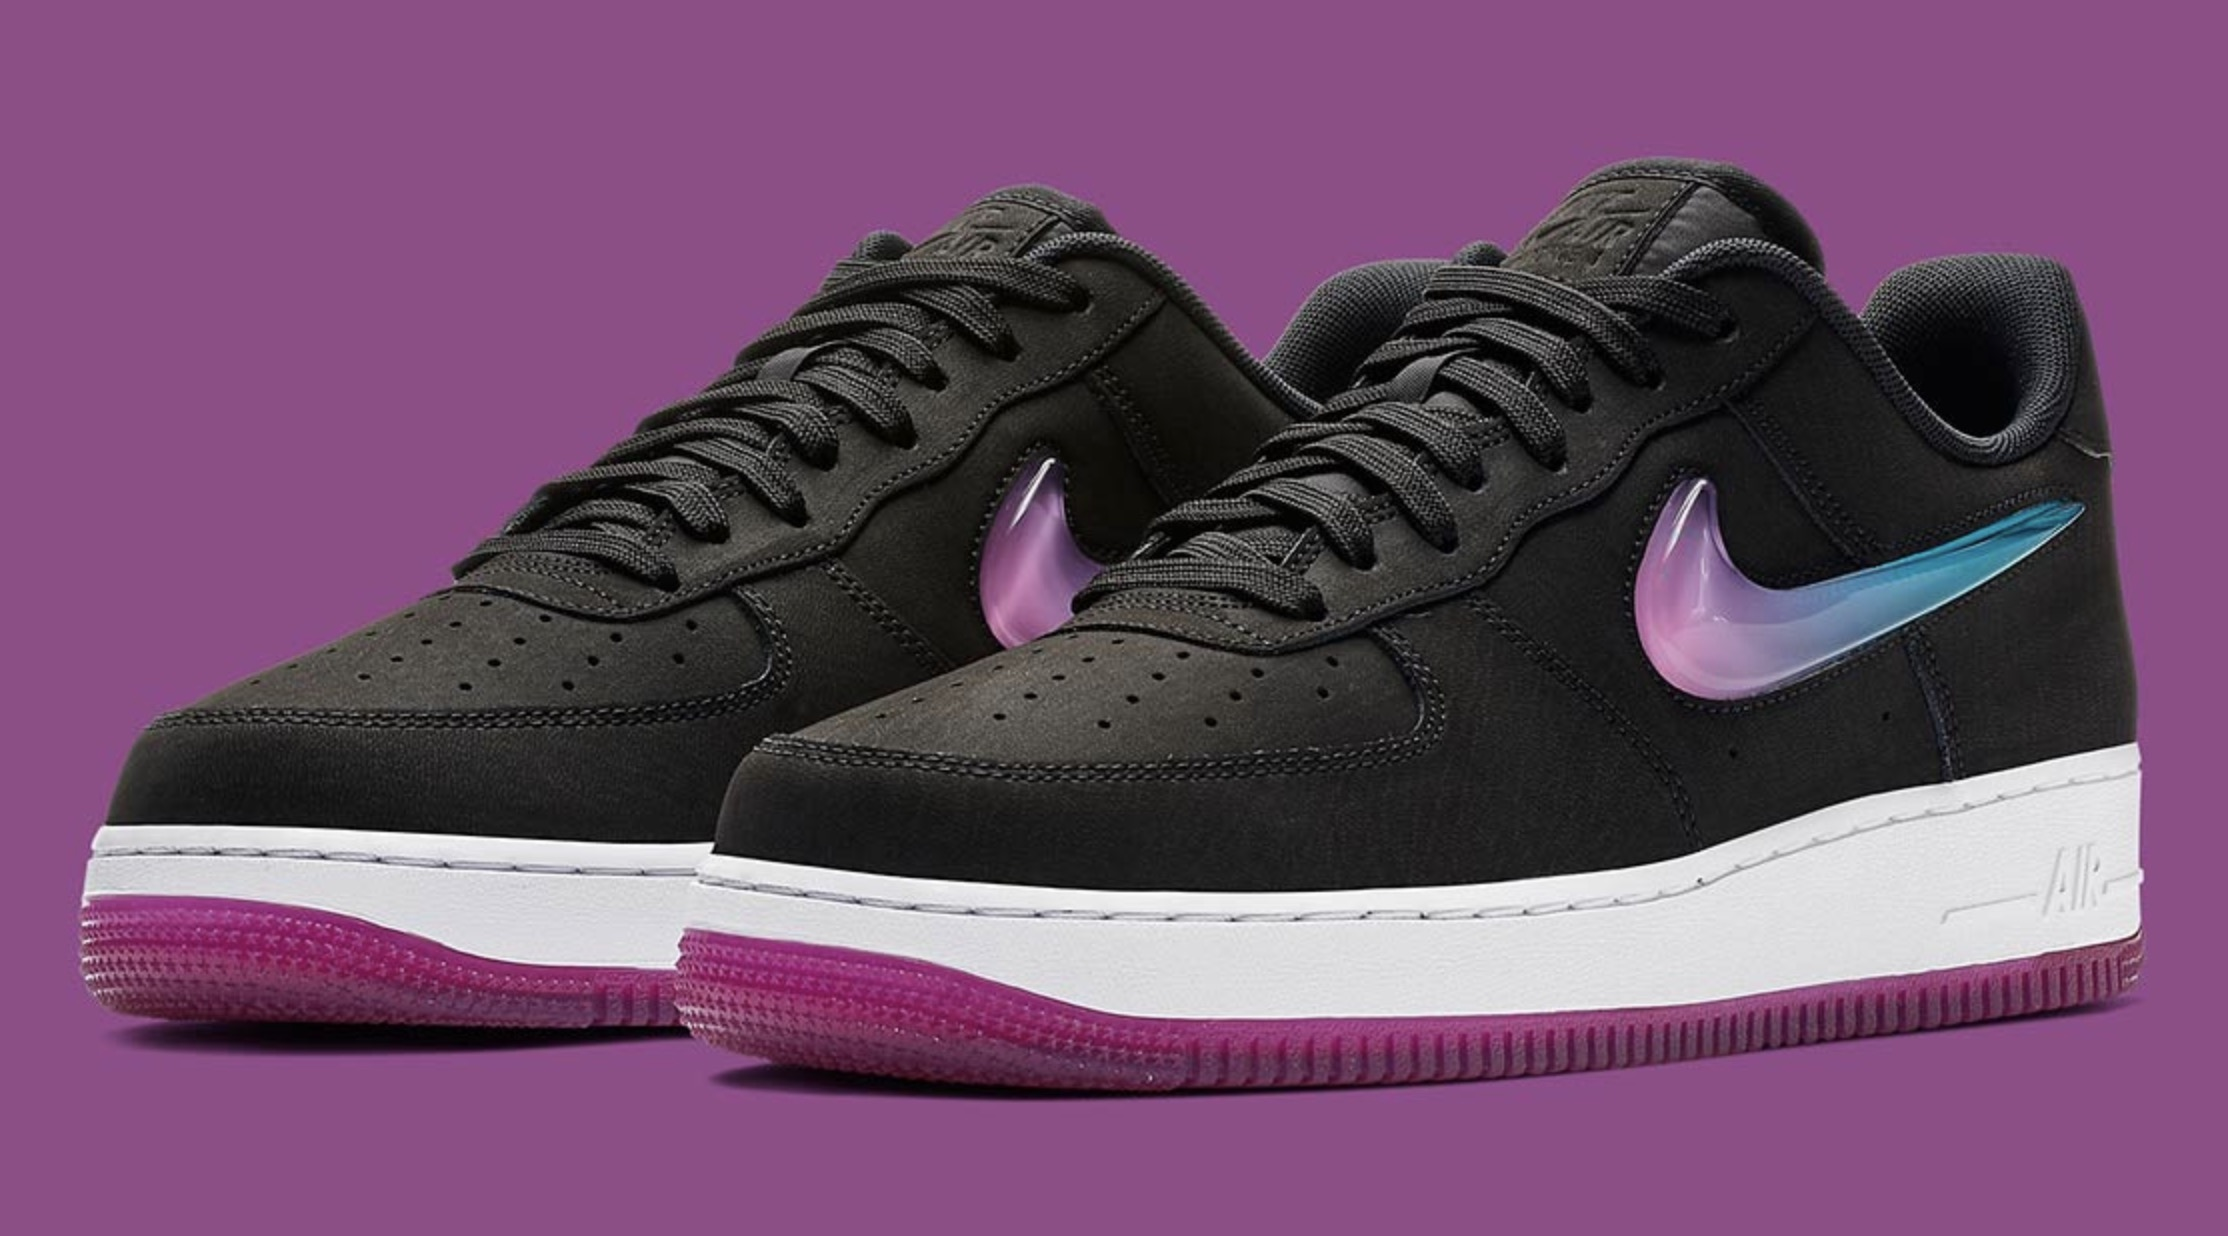 """Nike's Air Force 1 Gets An """"Active Fuchsia"""" Jewel Update"""